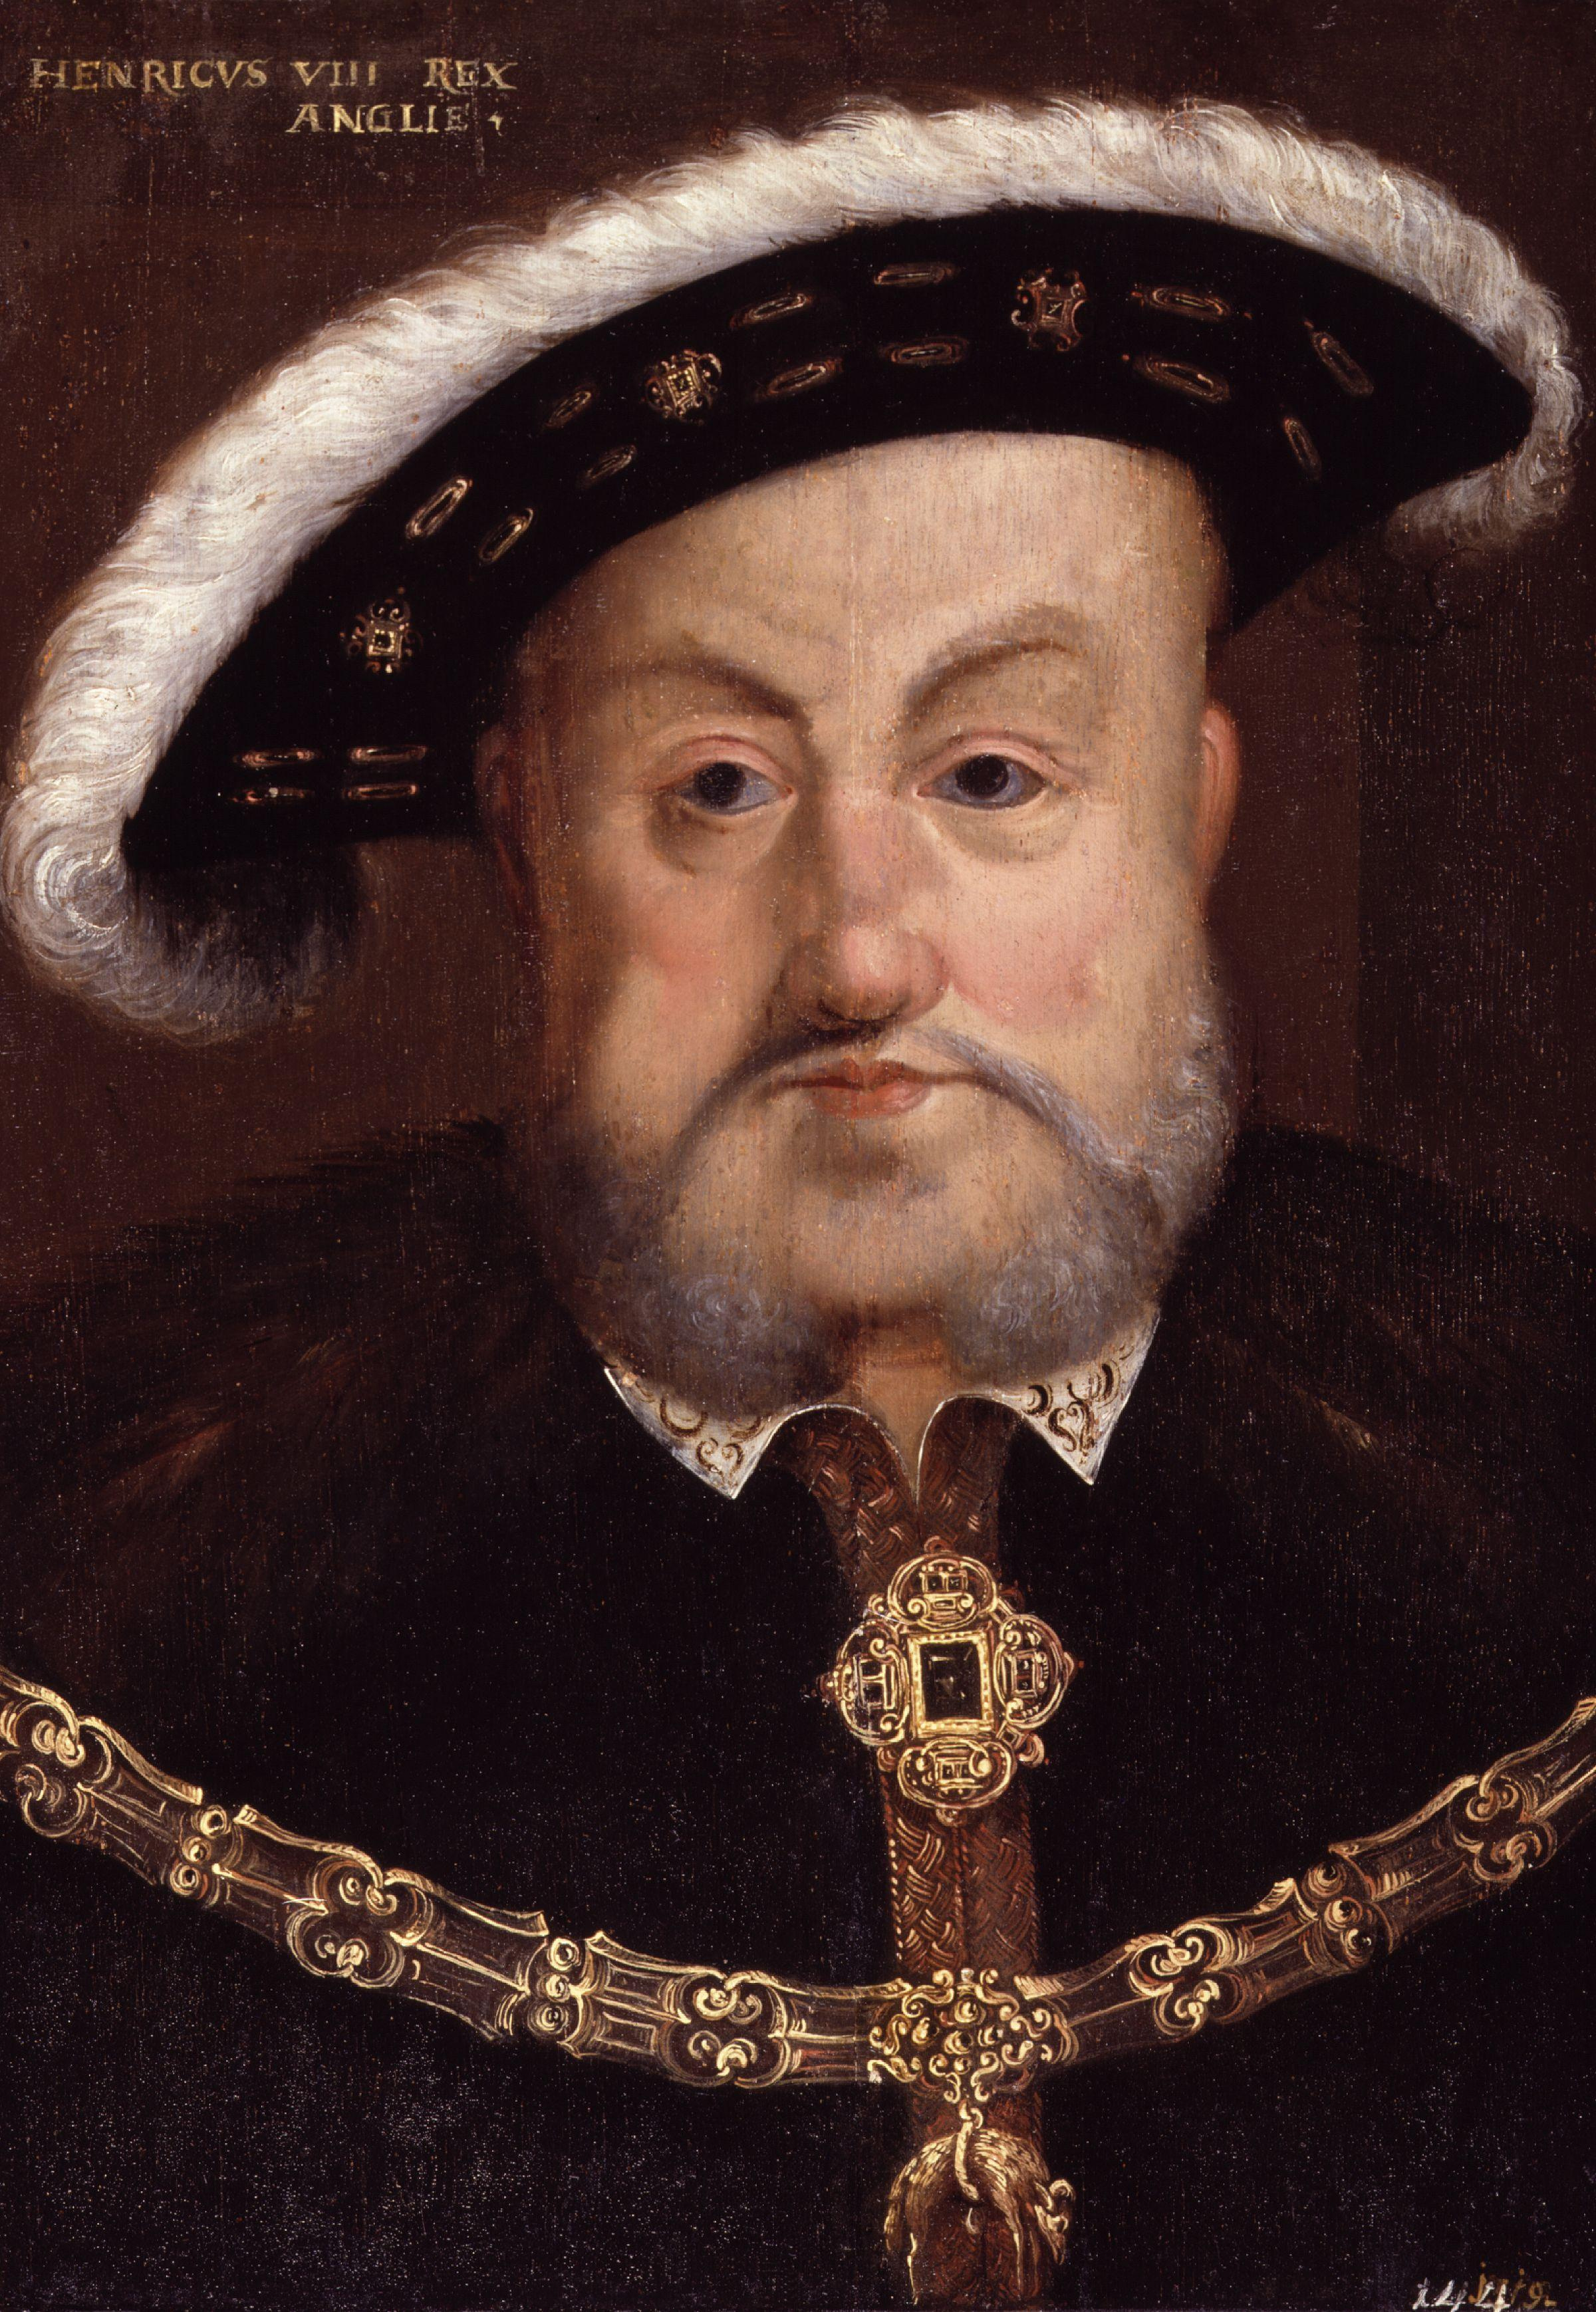 an introduction to the life and political history of king henry viii King henry viii is one of the most legendary kings of england - for many of the wrong reasons  in his unfortunately short reign and life, king edward vi of .